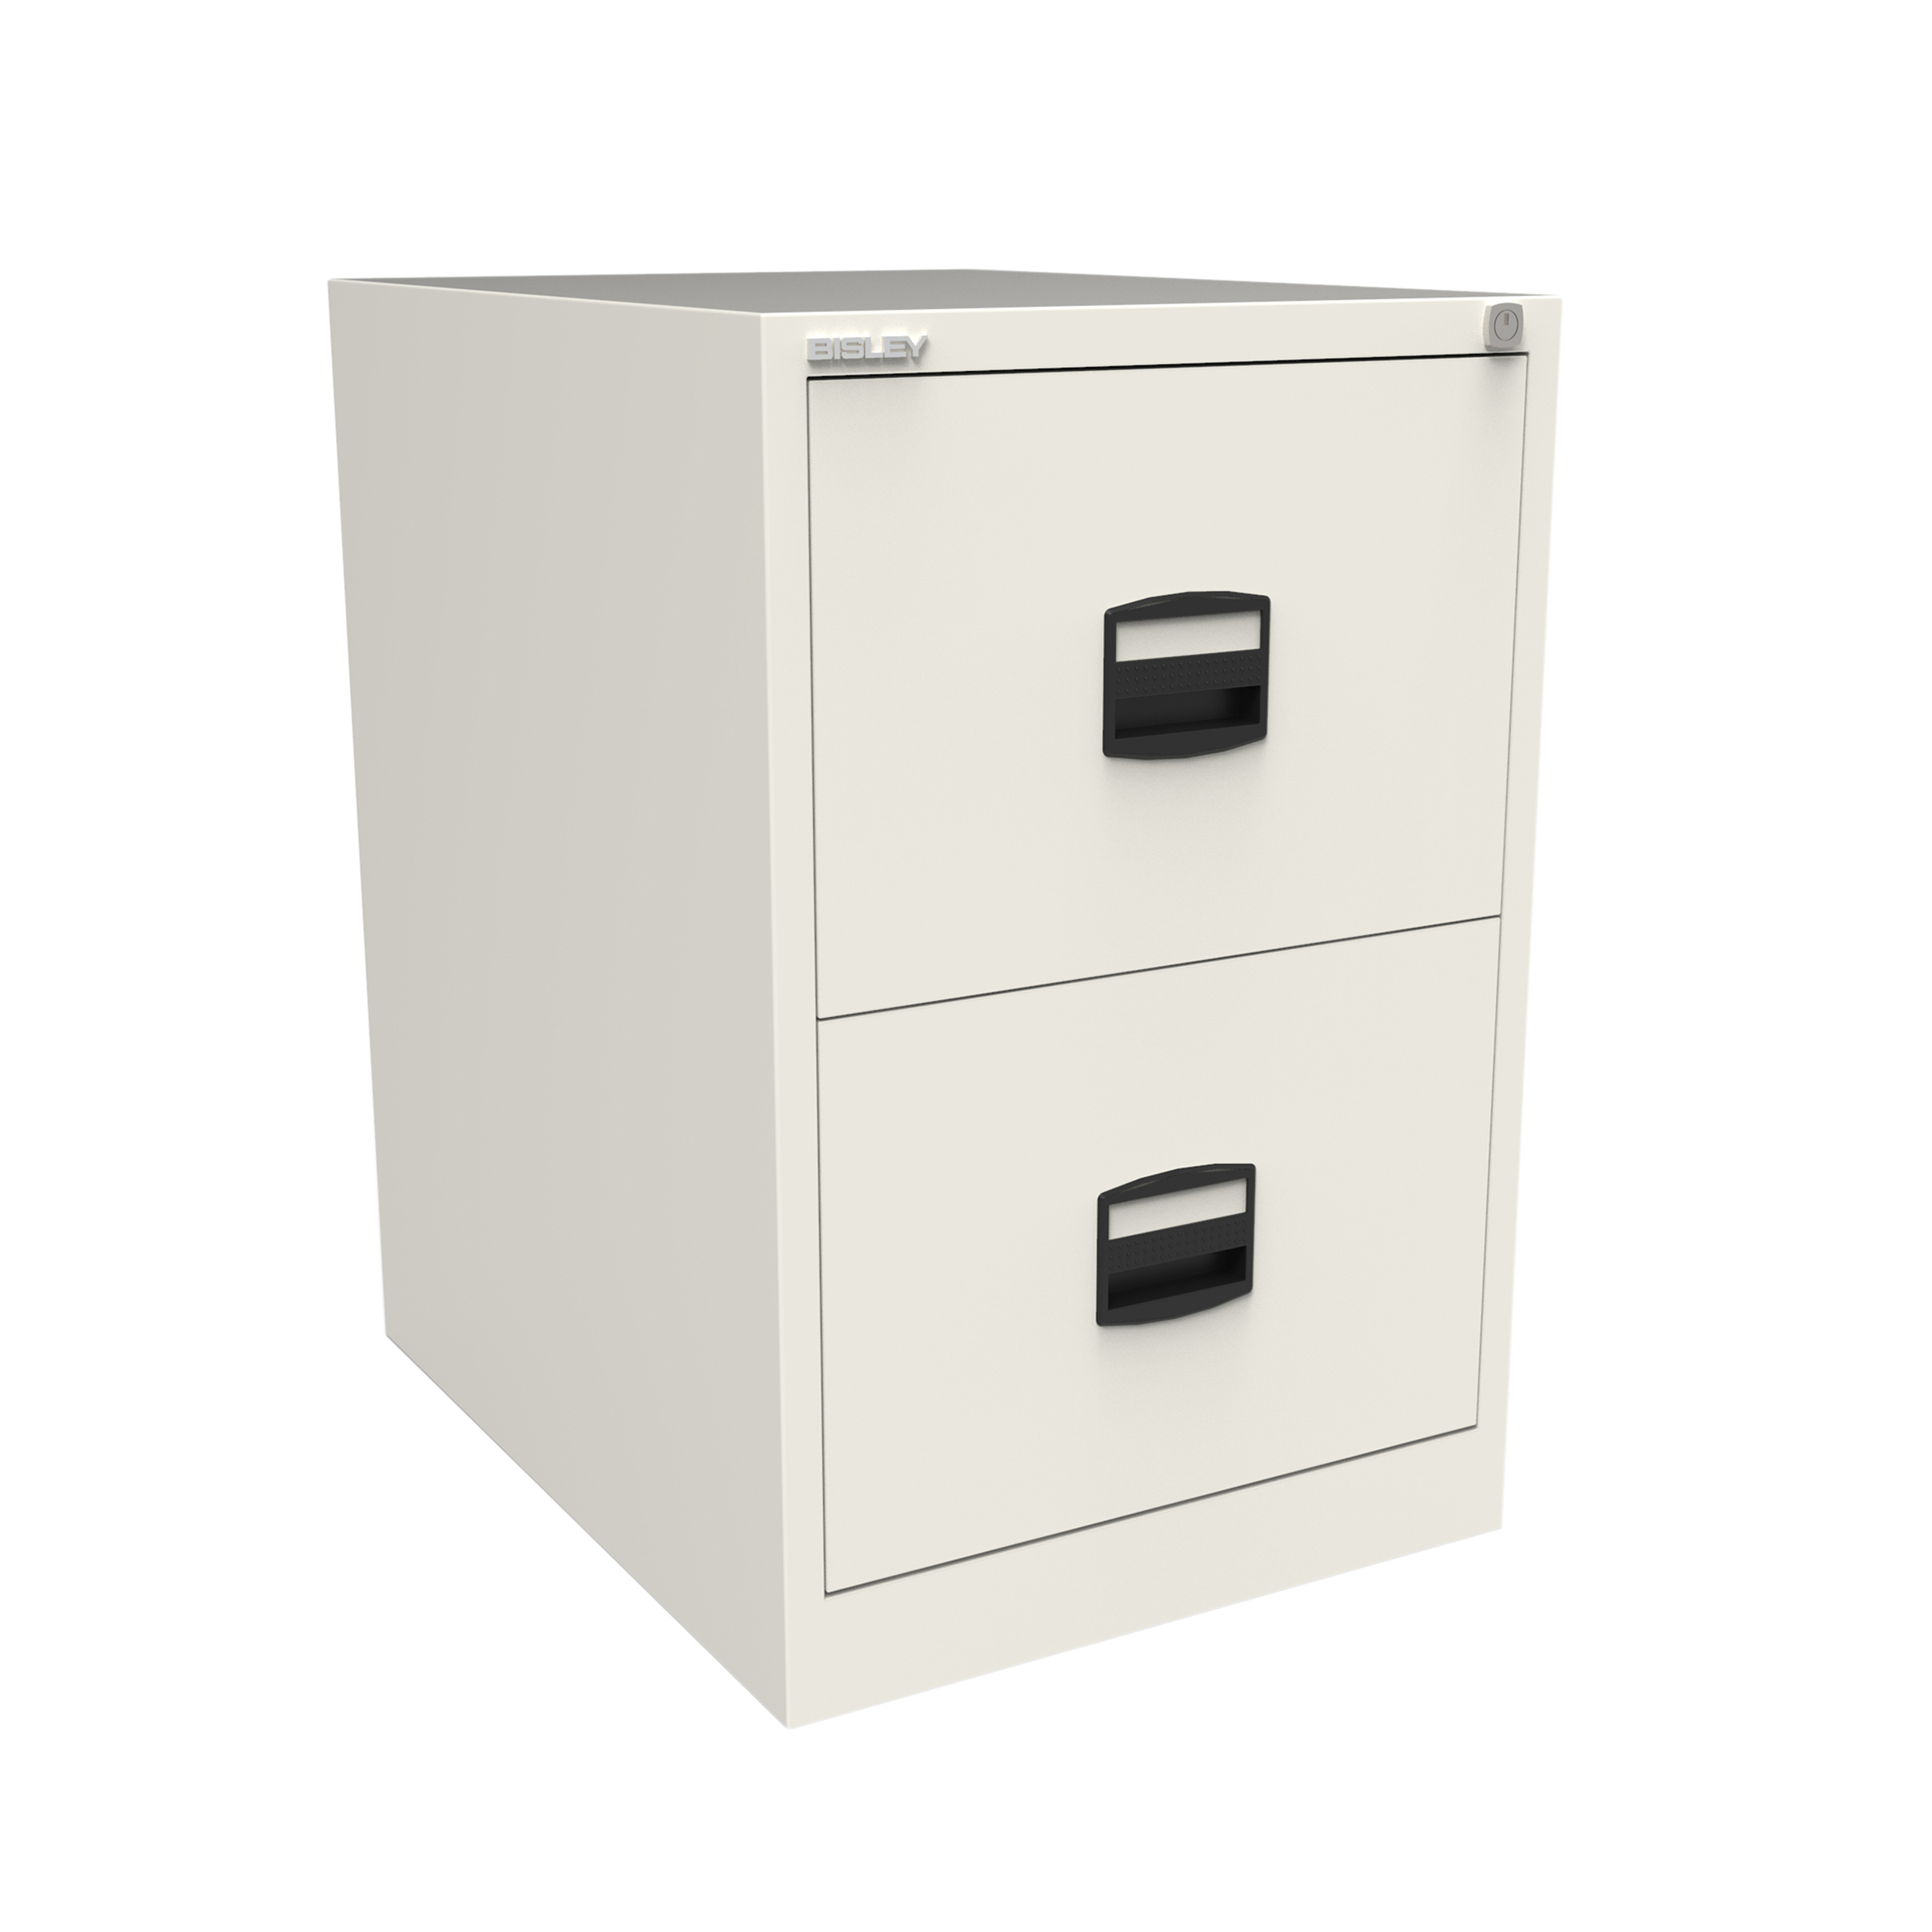 Trexus 2 Drawer Filing Cabinet 470x622x711mm Chalk White Ref CC2H1A-ab9